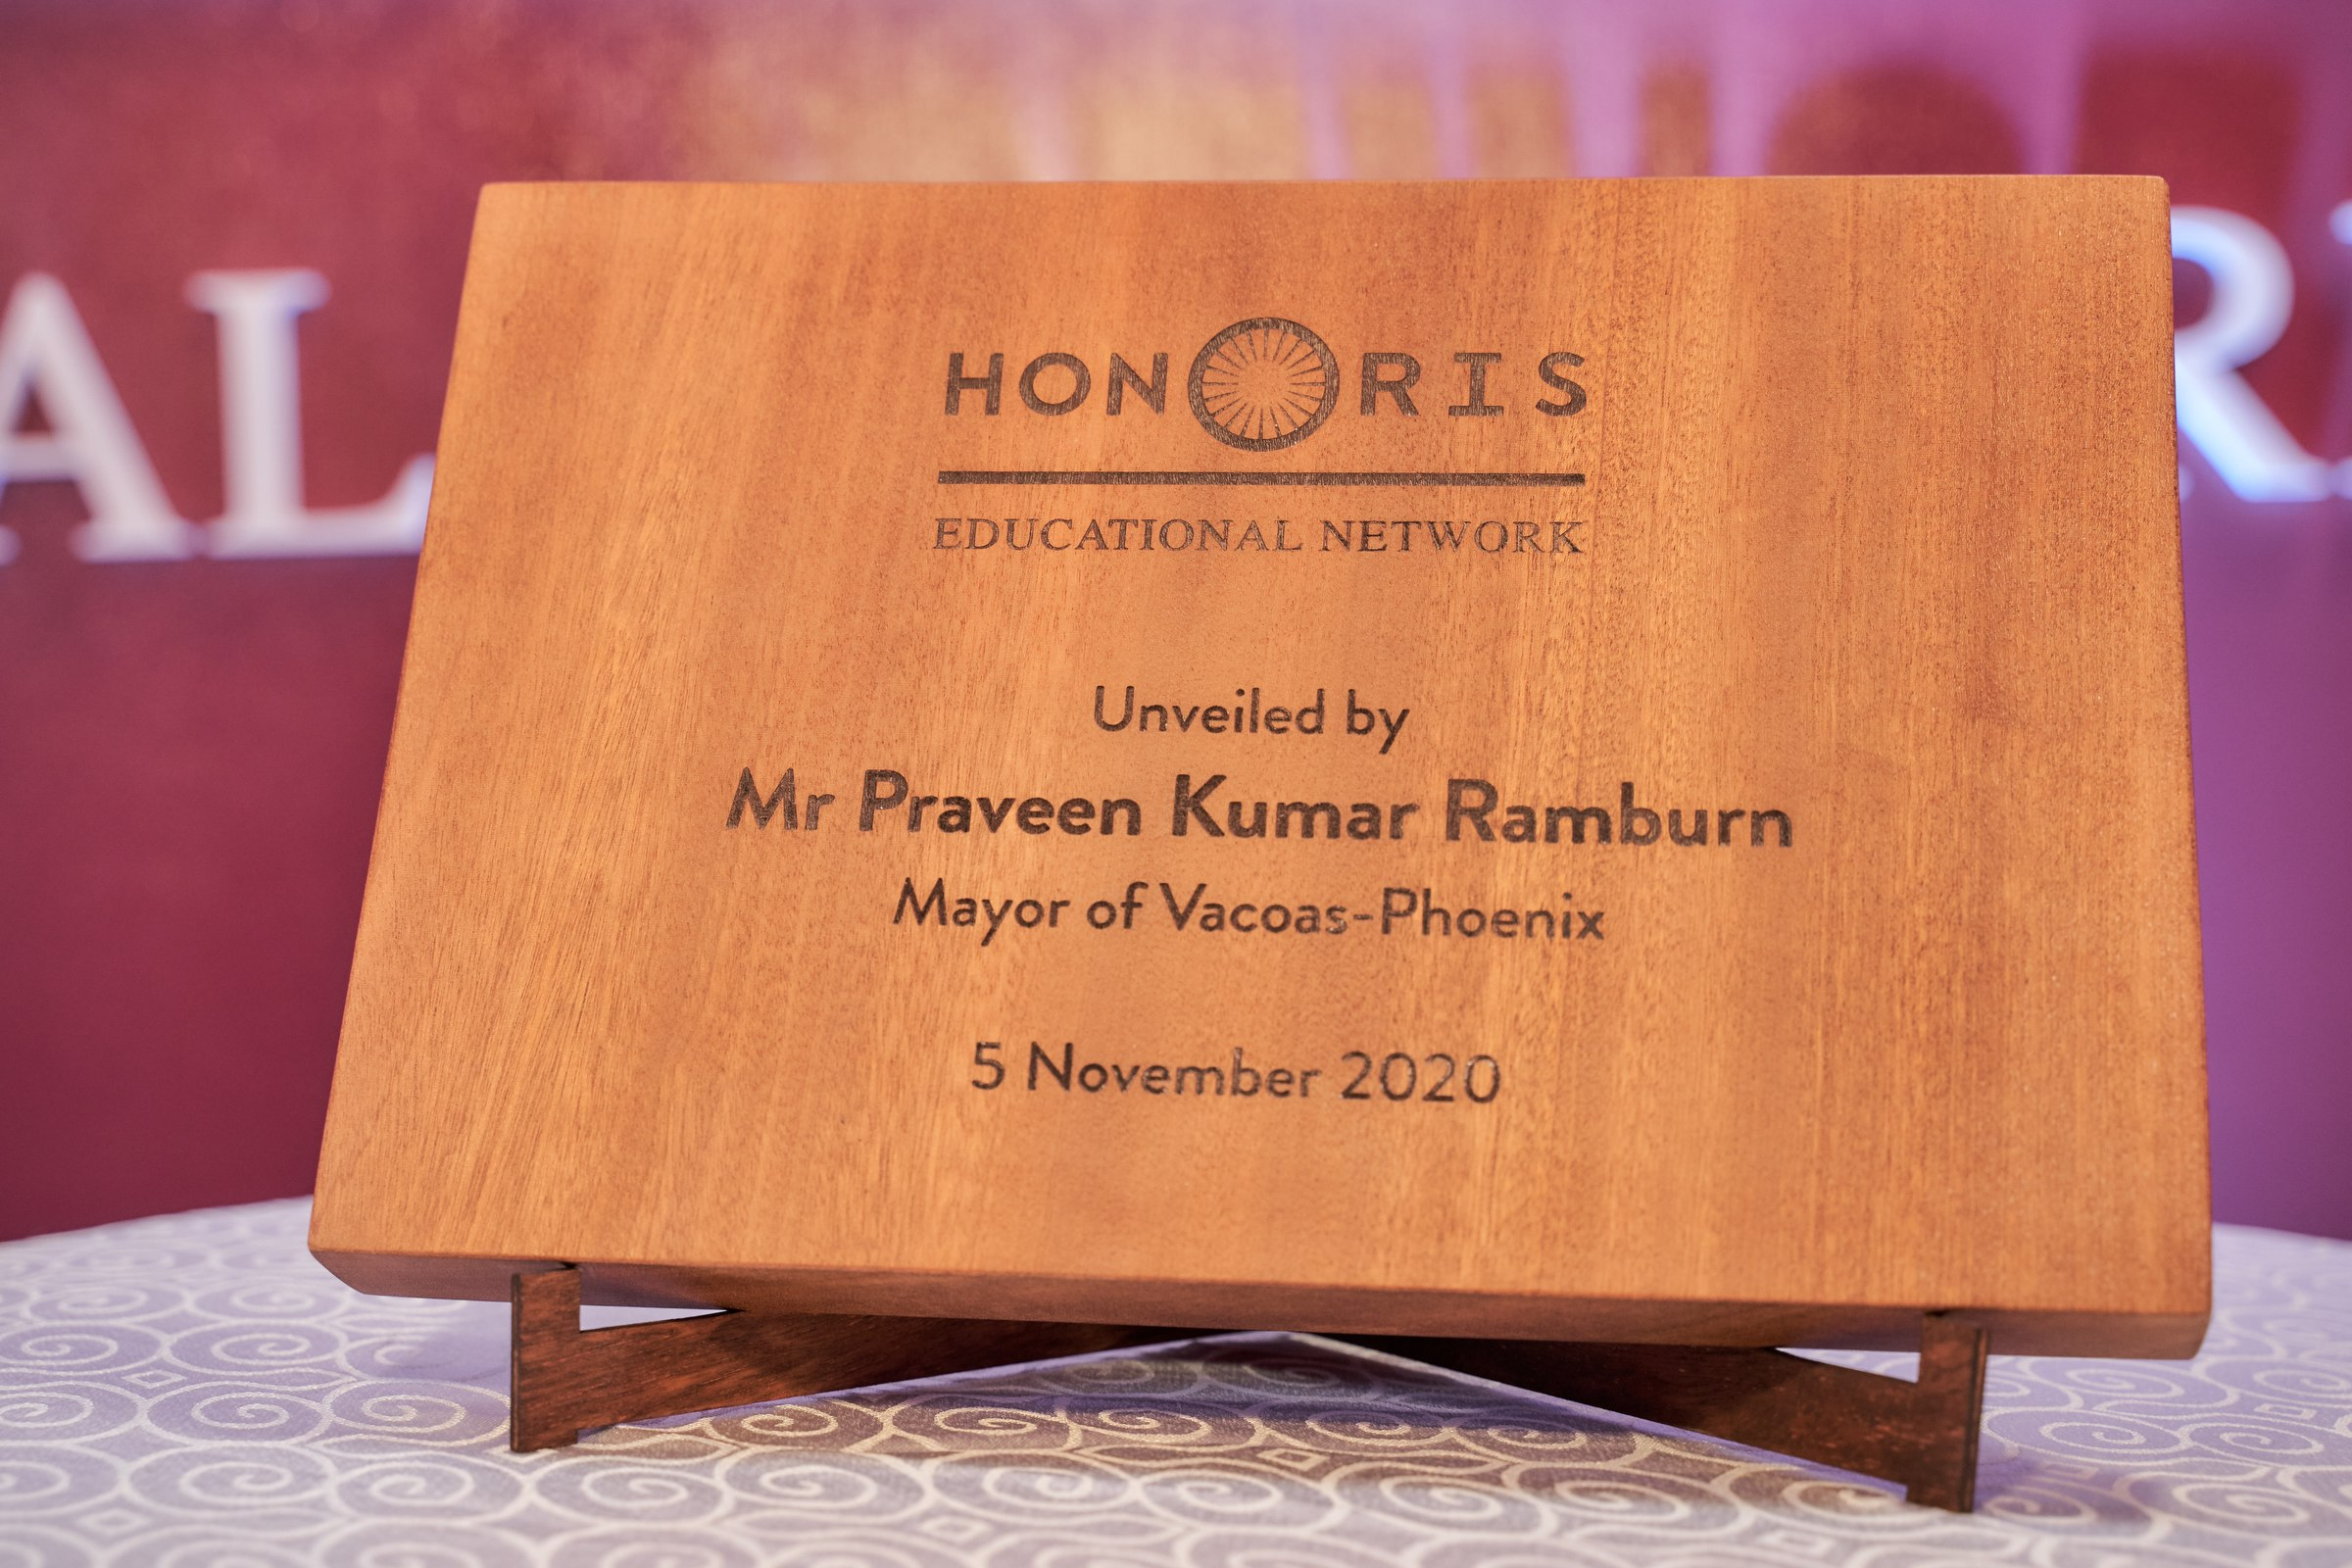 honoris educational network